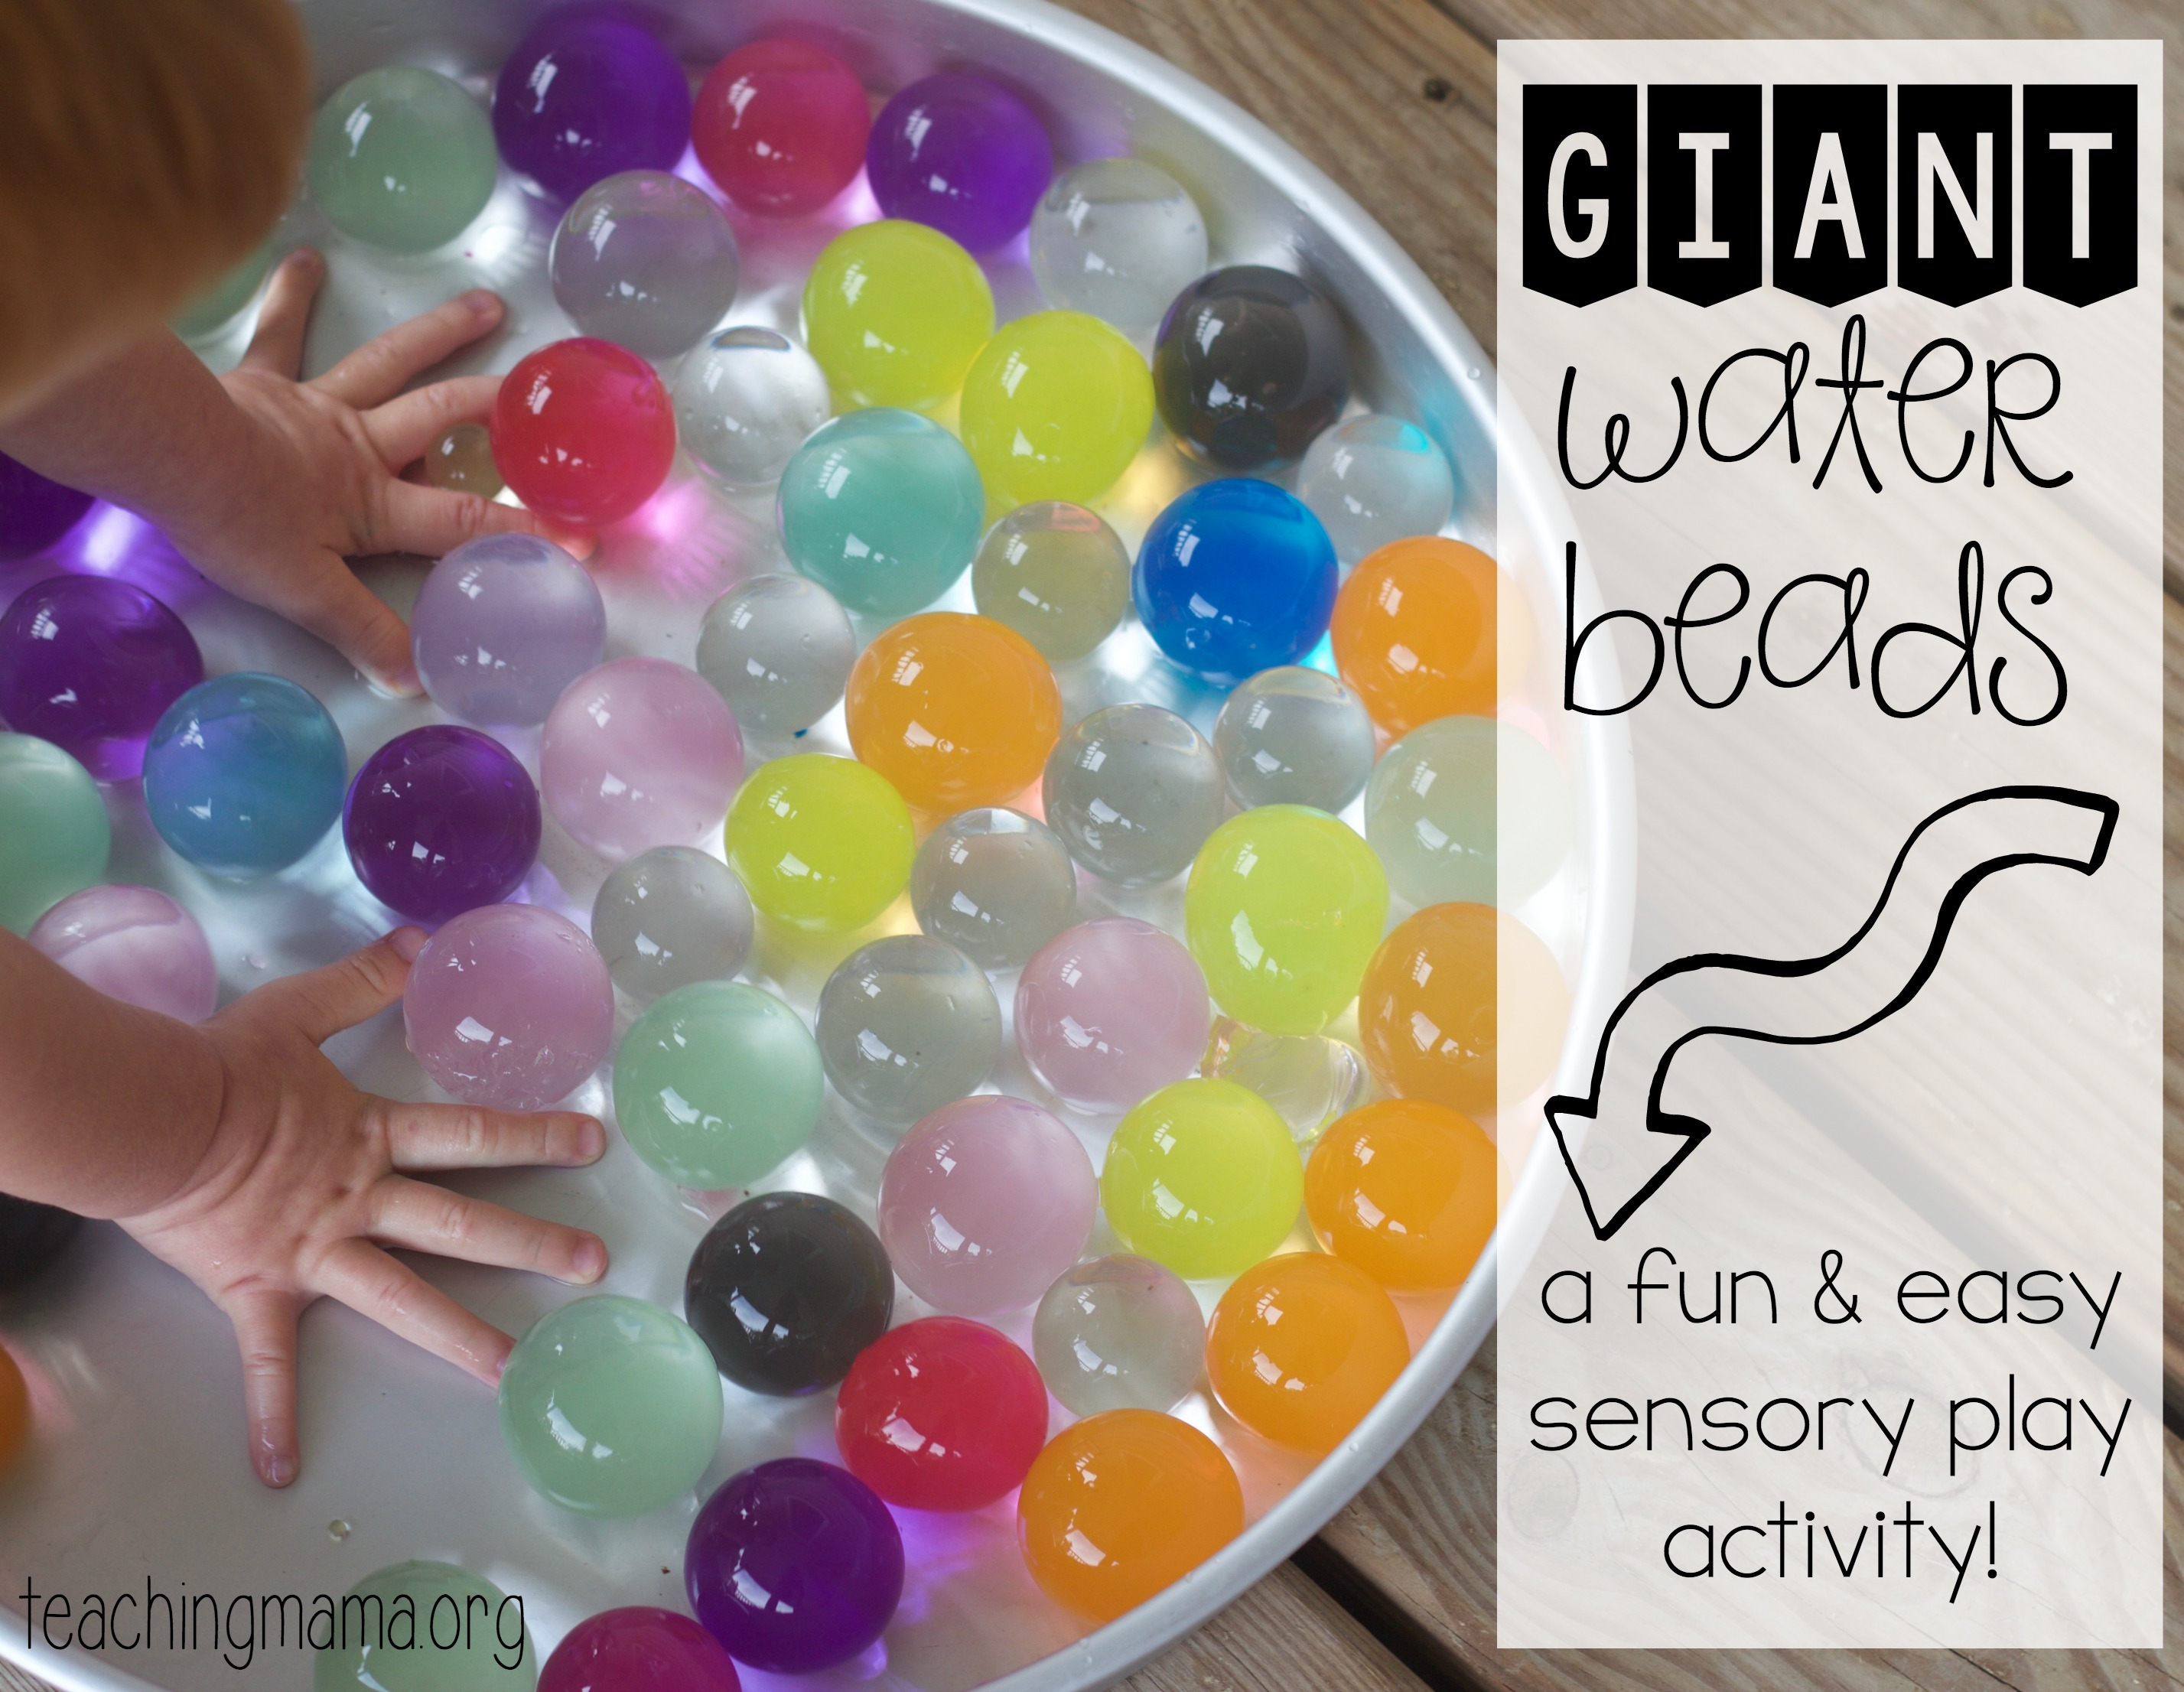 Giant Water Beads on Fine Motor Skills Activities For Kids